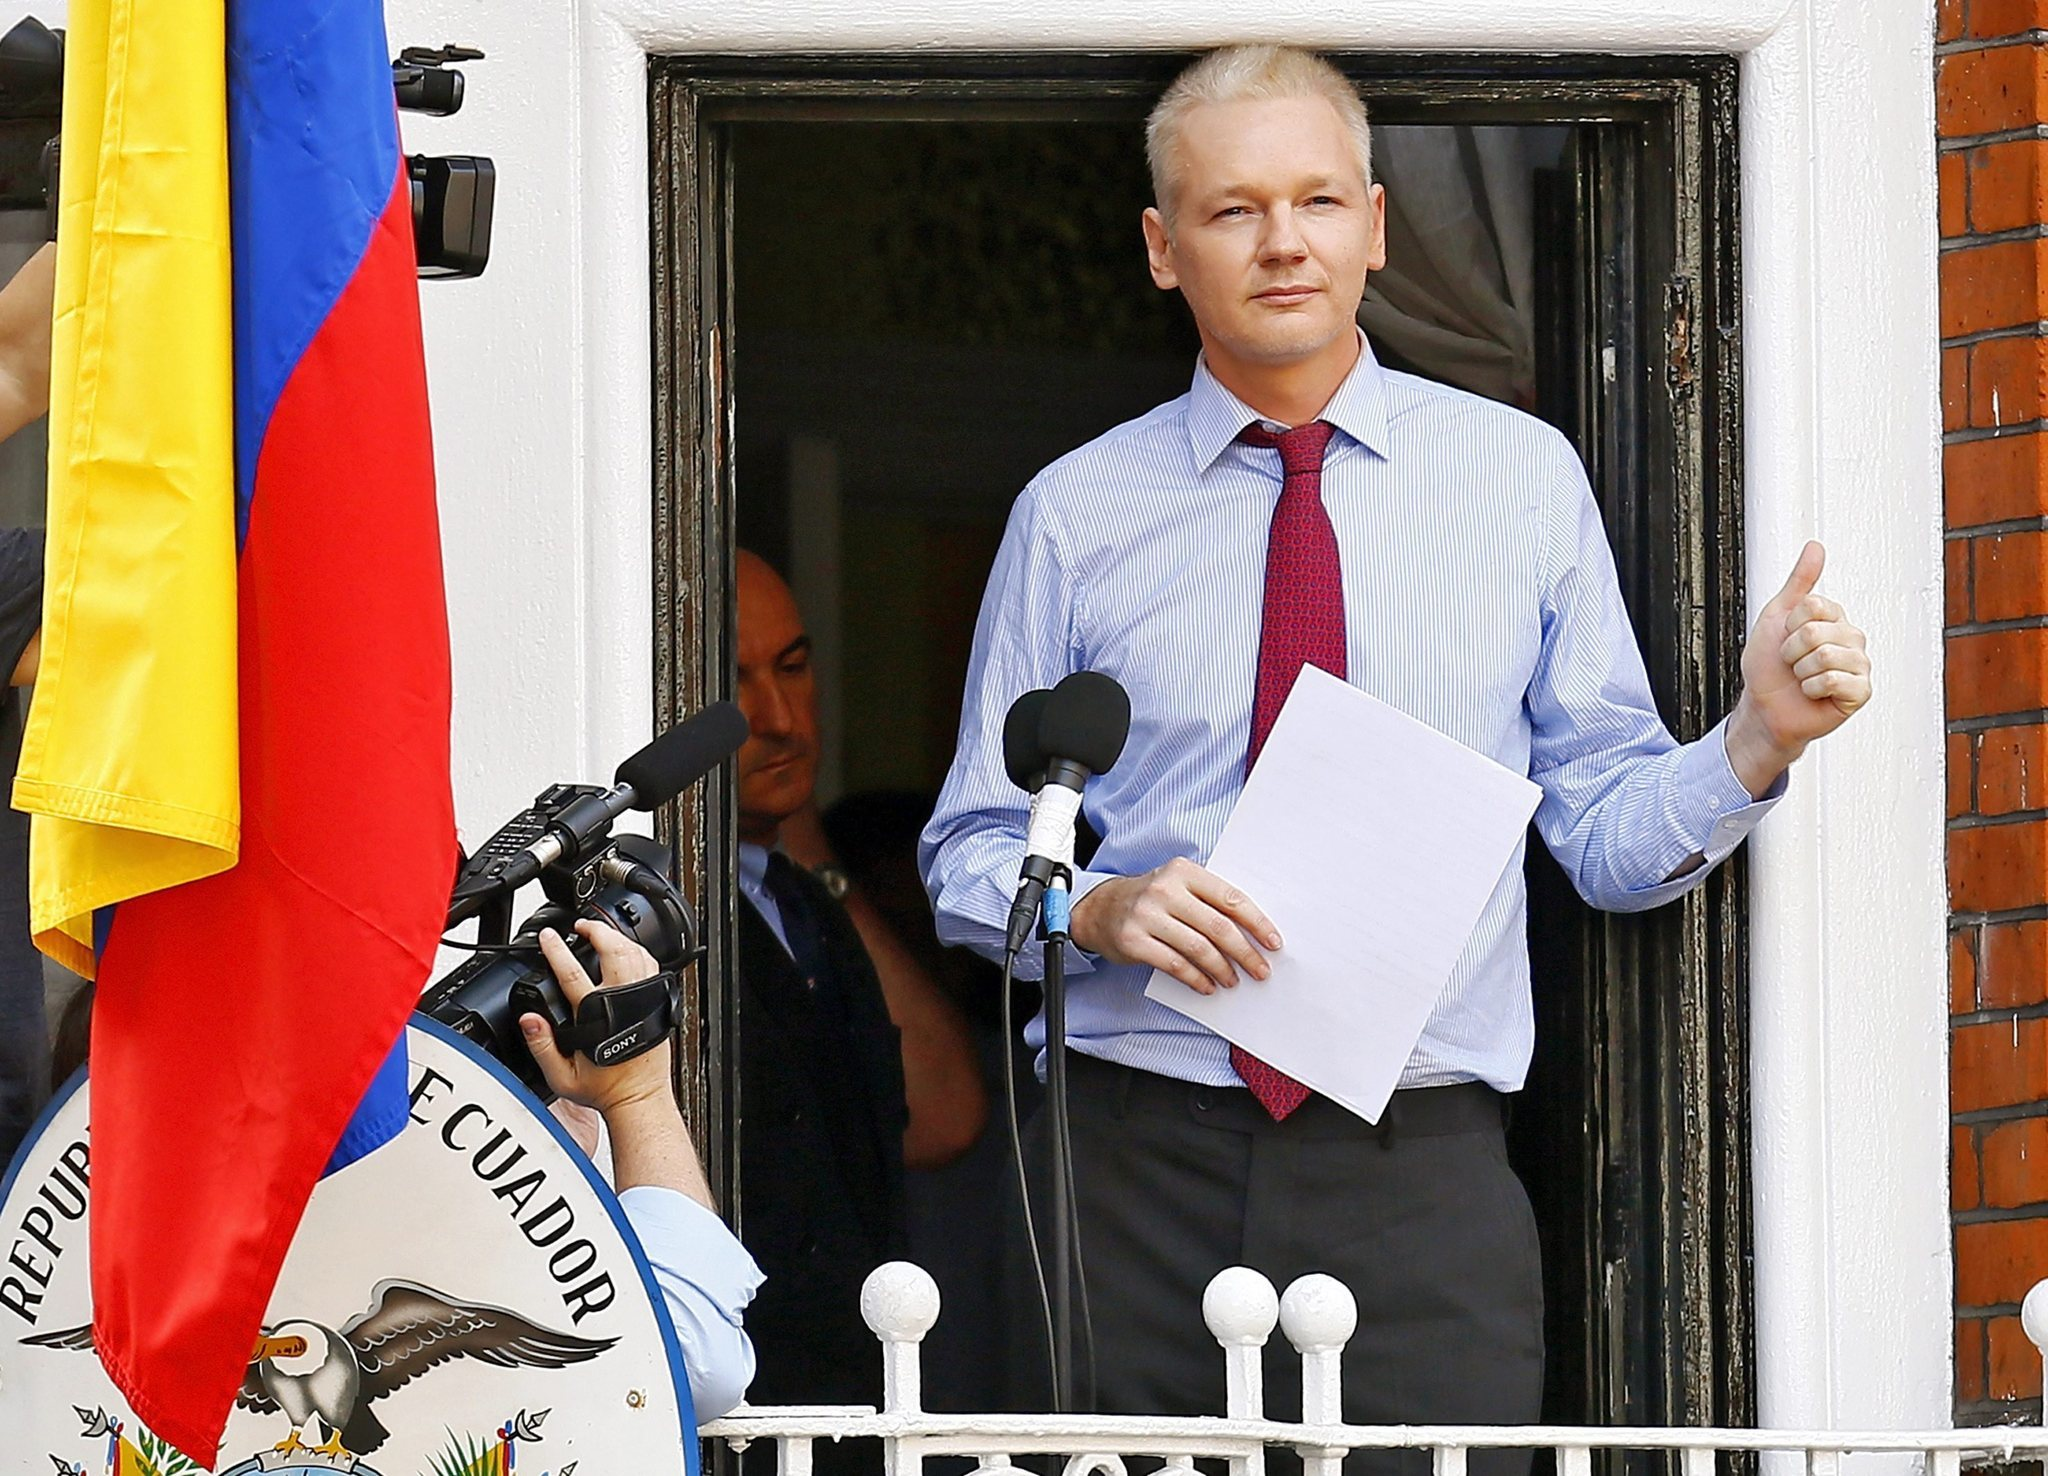 chi-sweden-julian-assange-embassy-20150313